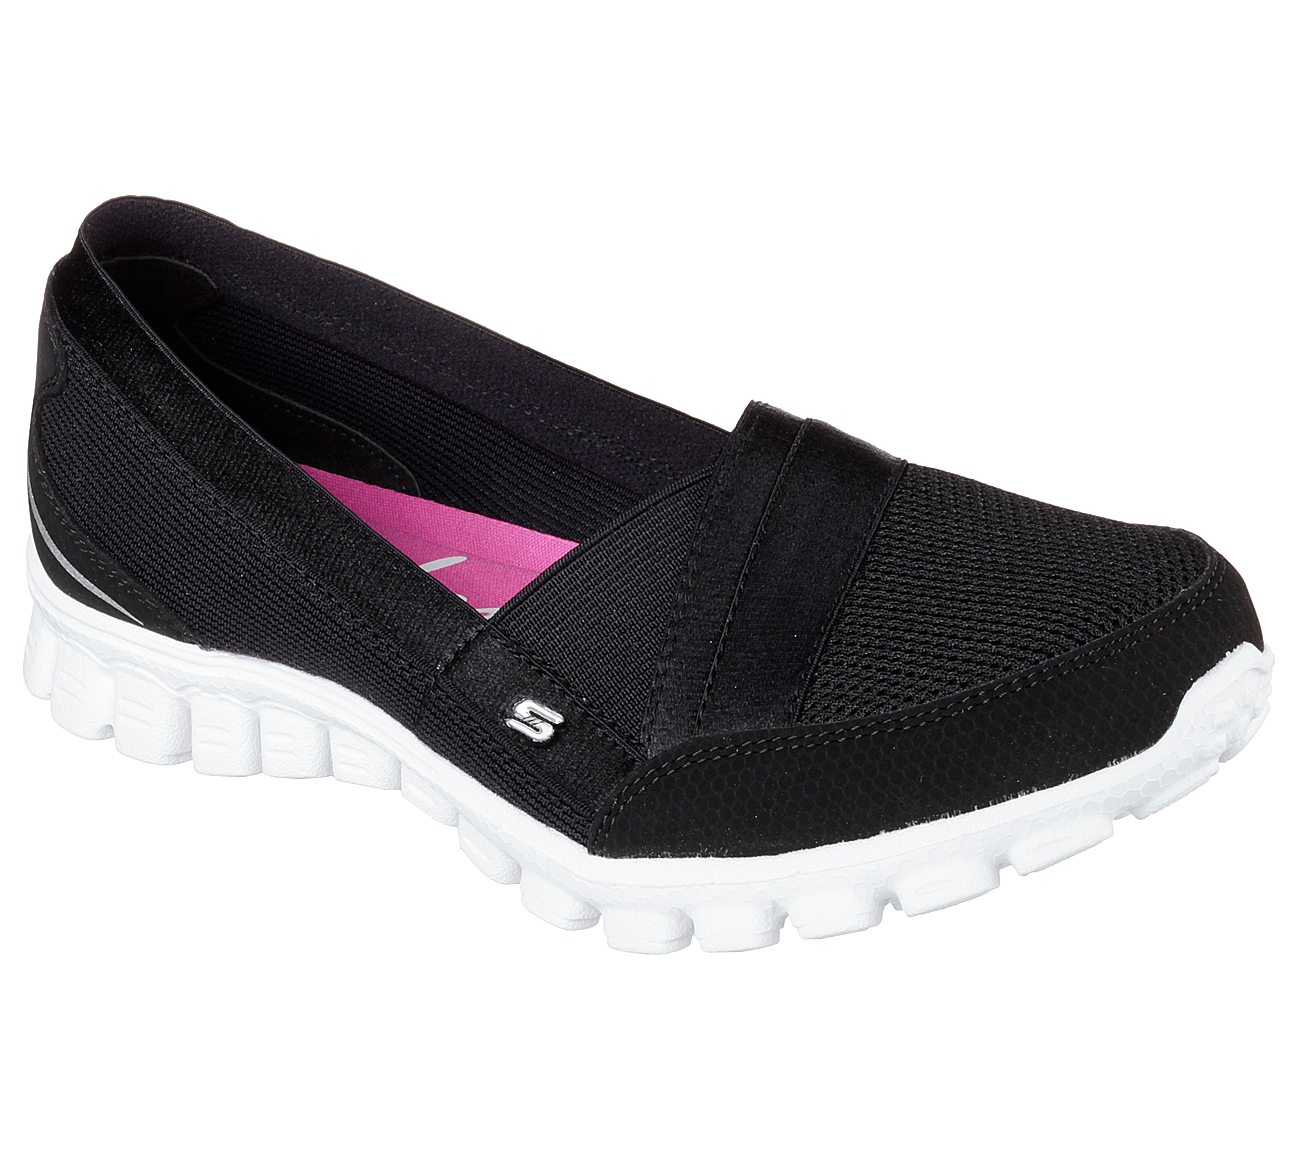 skechers ez flex 2. hover to zoom skechers ez flex 2 n